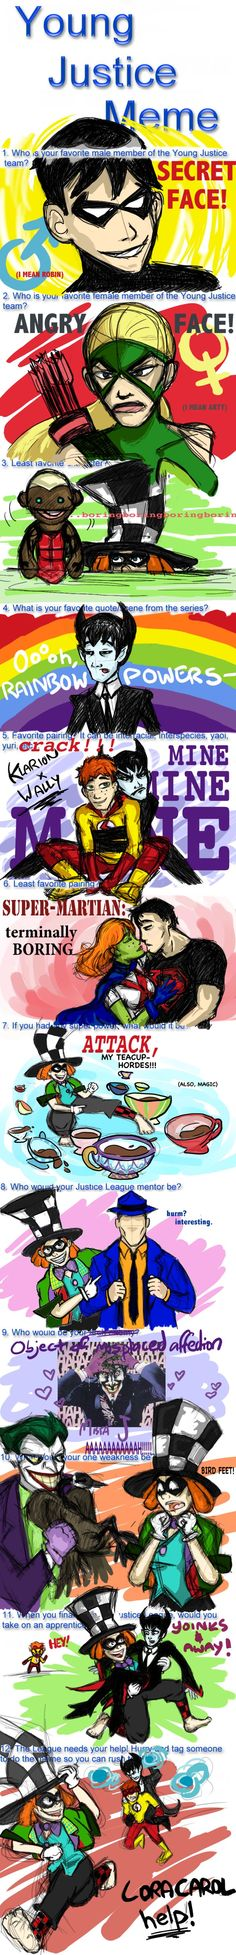 Young Justice Meme by ~Mad-Hatter-LCarol on deviantART